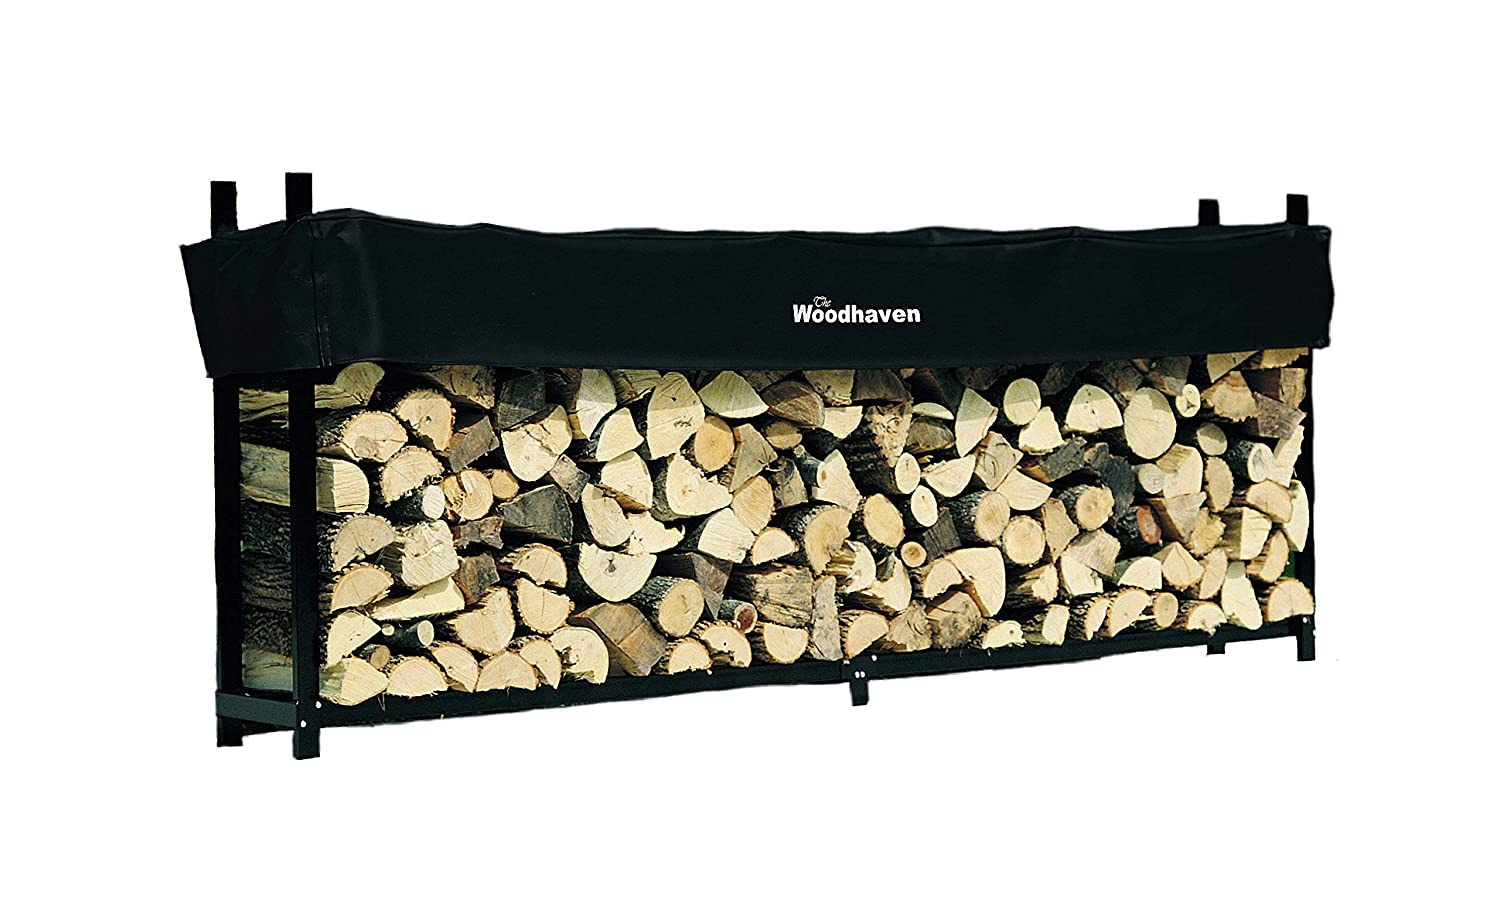 8' WOODHAVEN HEAVY DUTY FIREWOOD RACK ALEXANDER MFG WR008